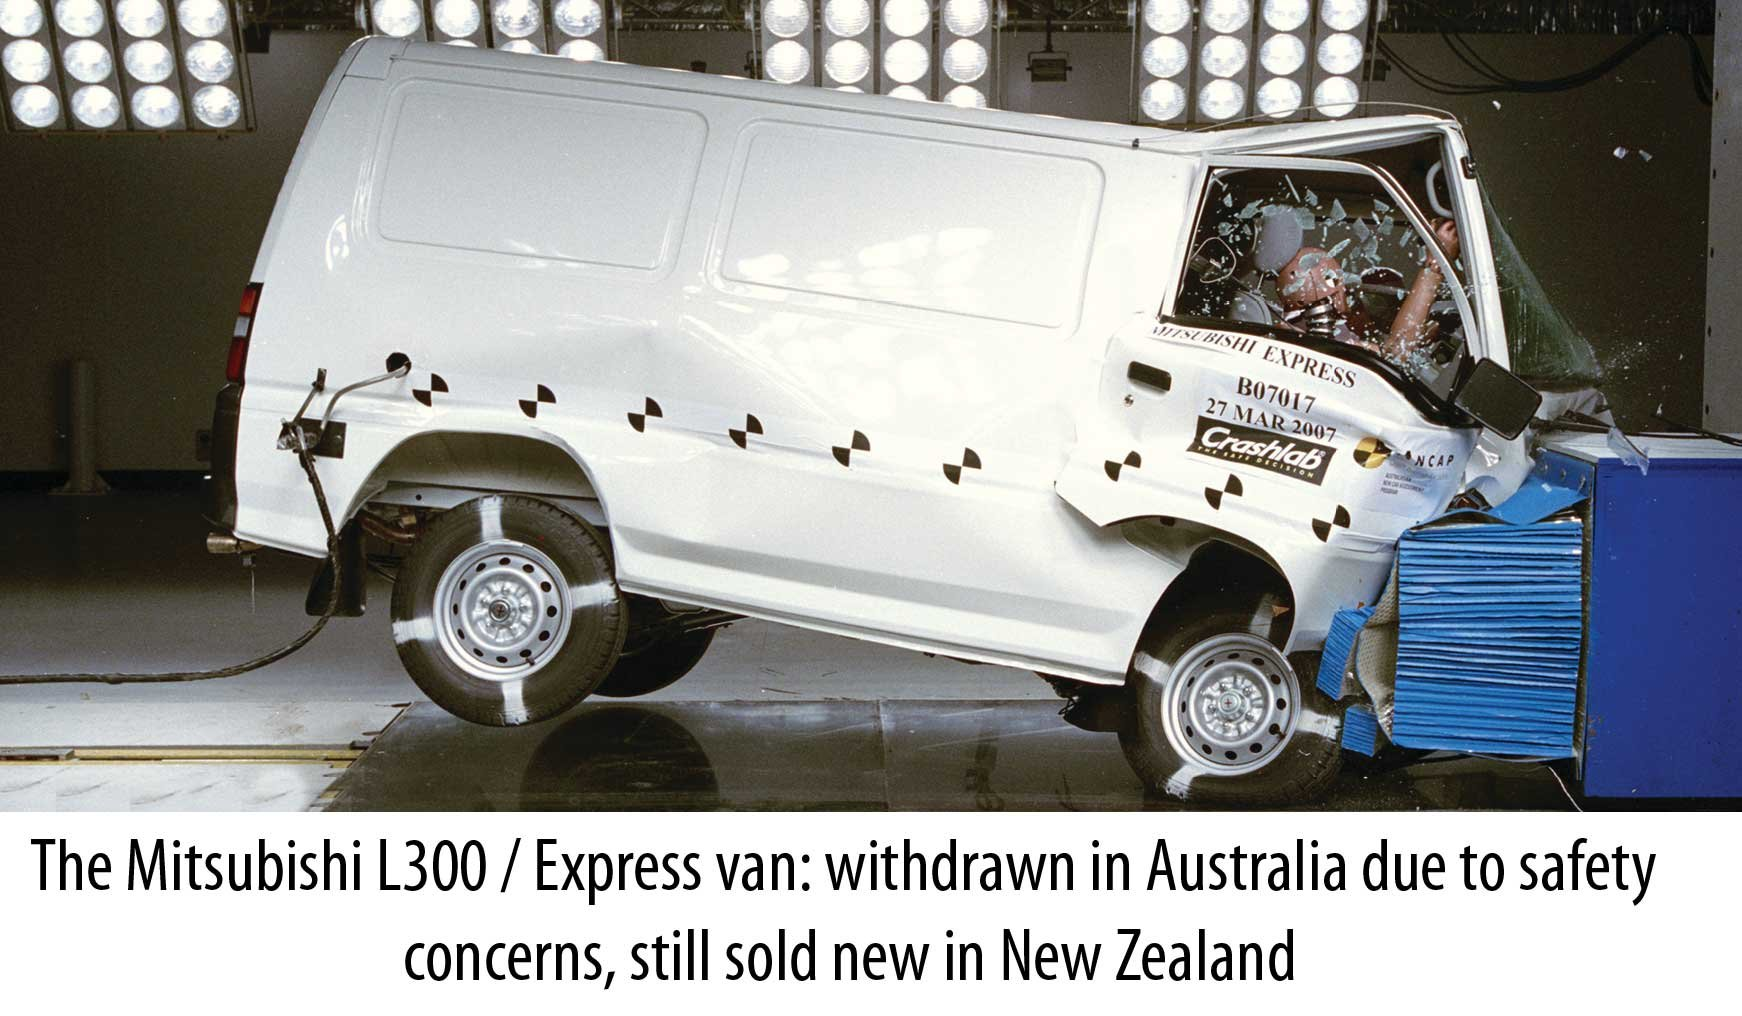 Deathtrap Vehicles Banned In Australia Promoted In Nz